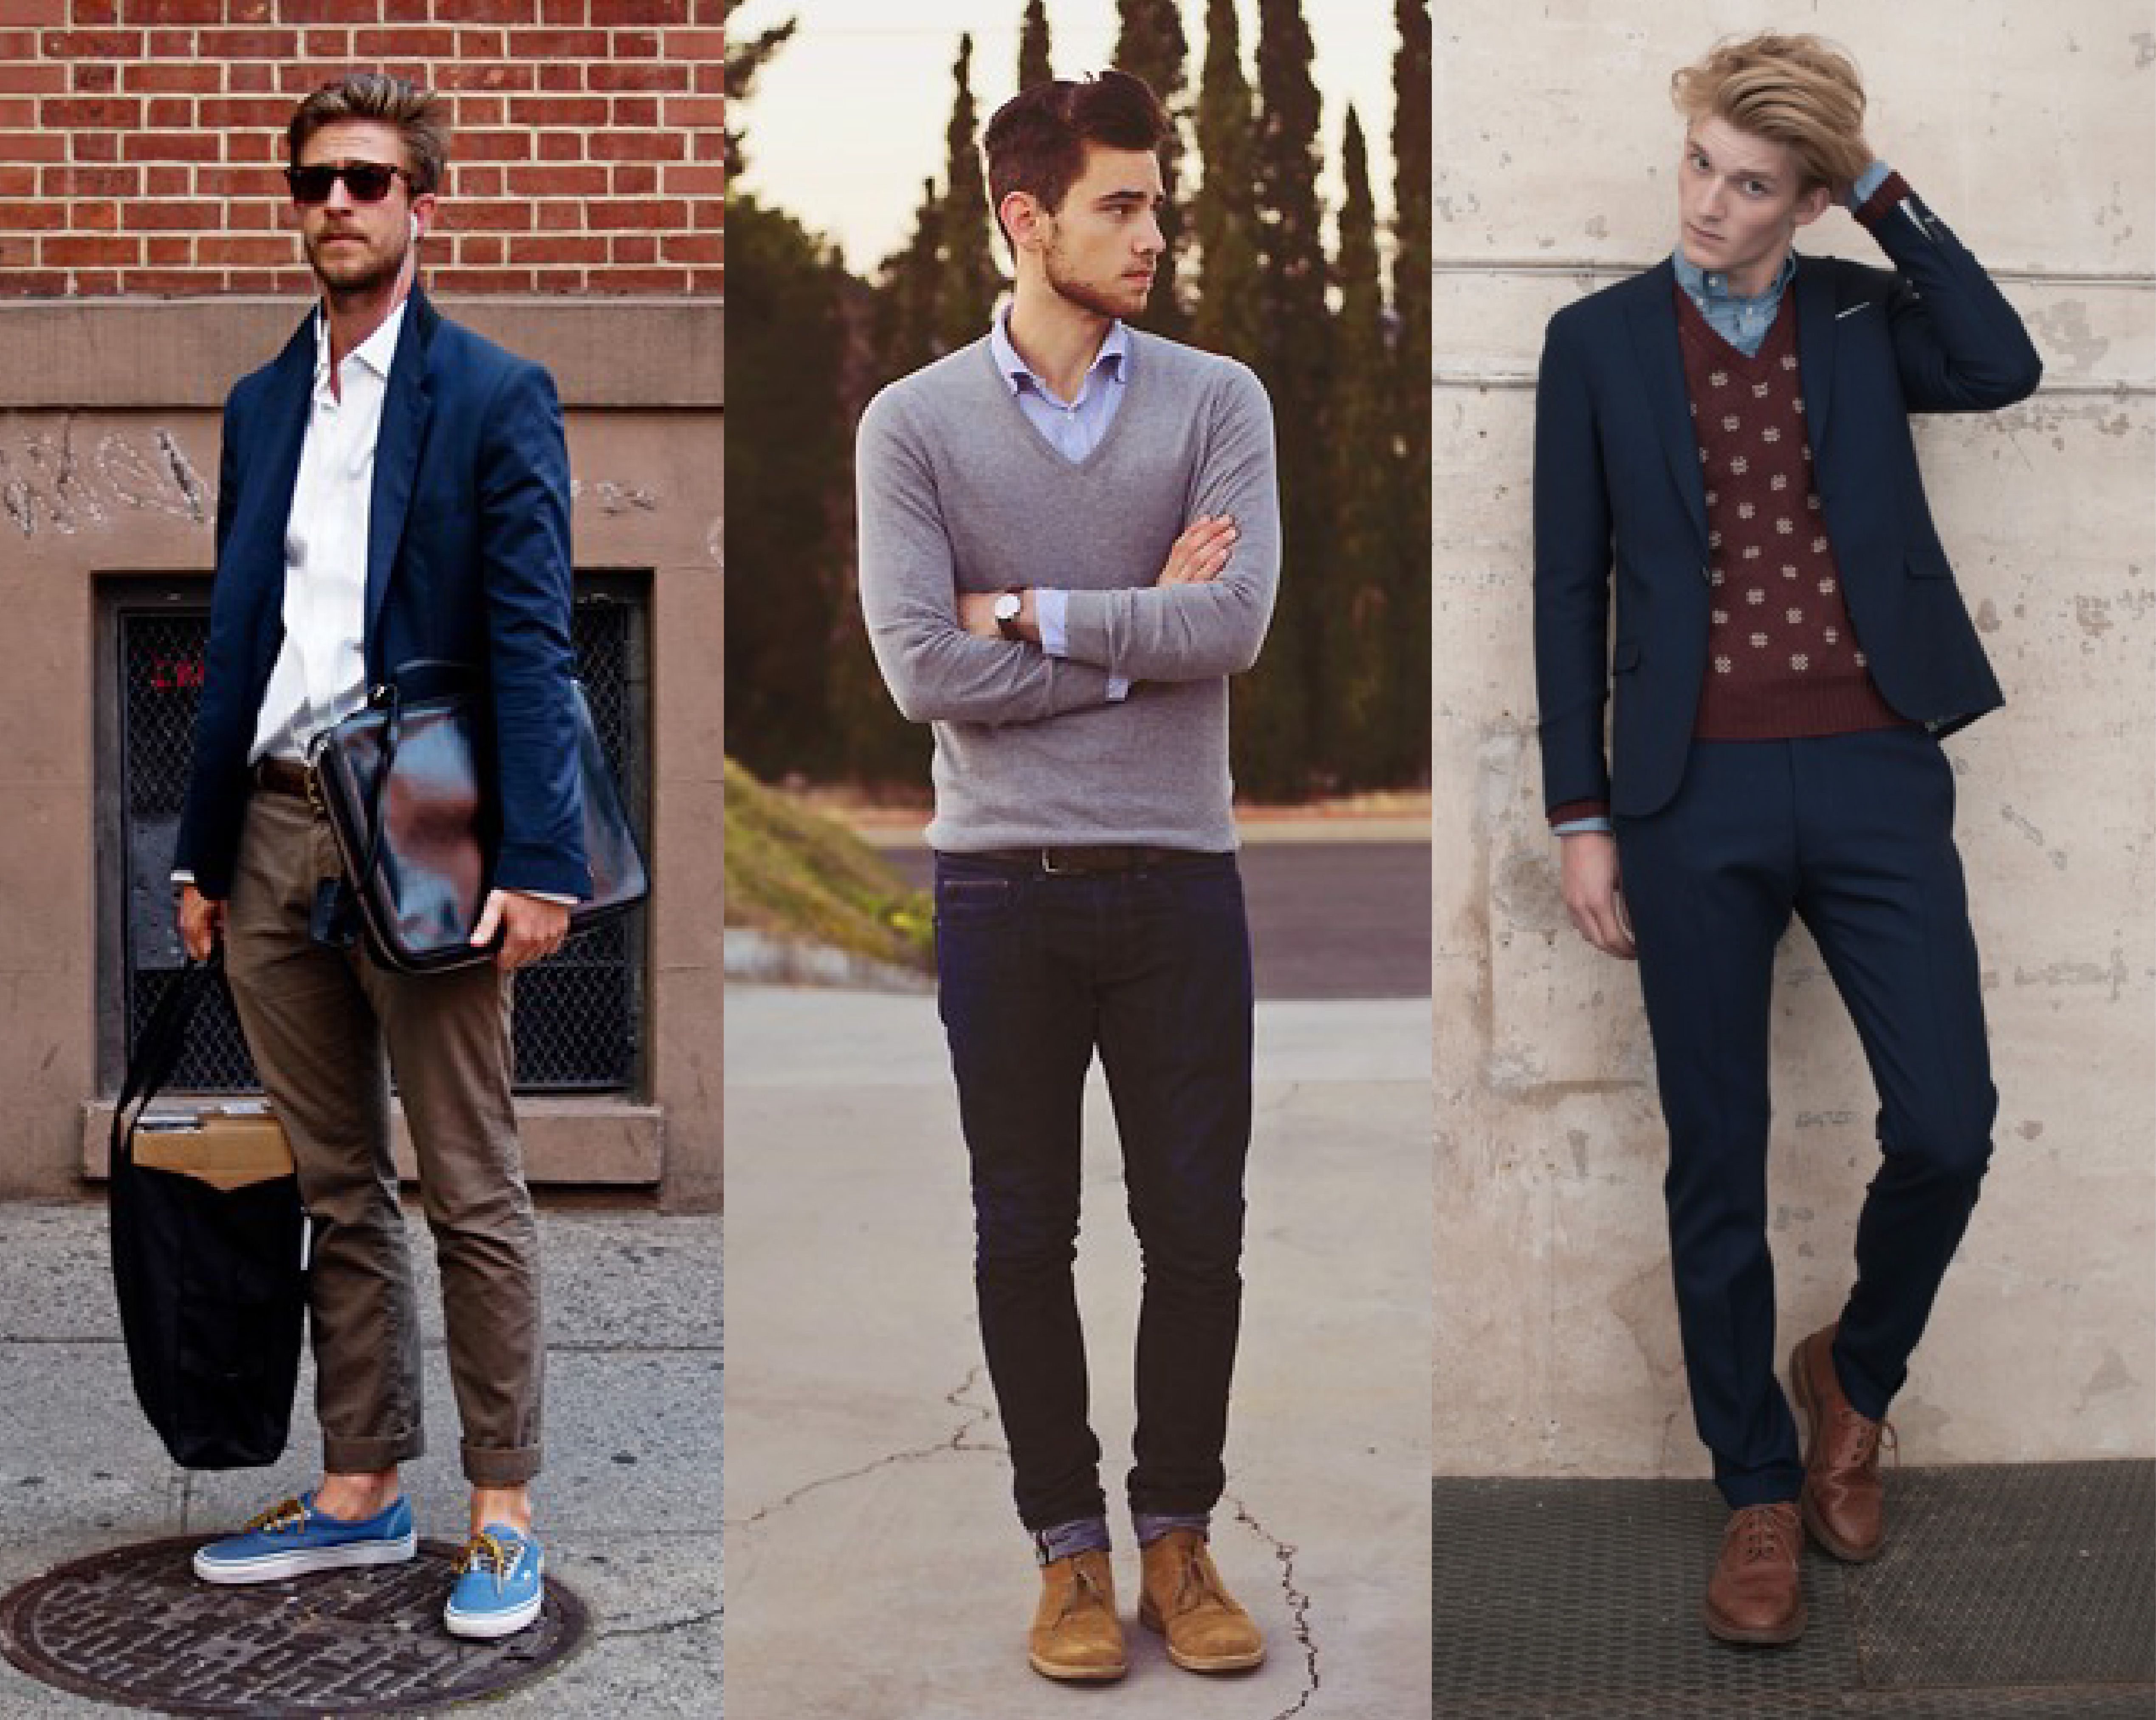 How to hipster wear clothing photo